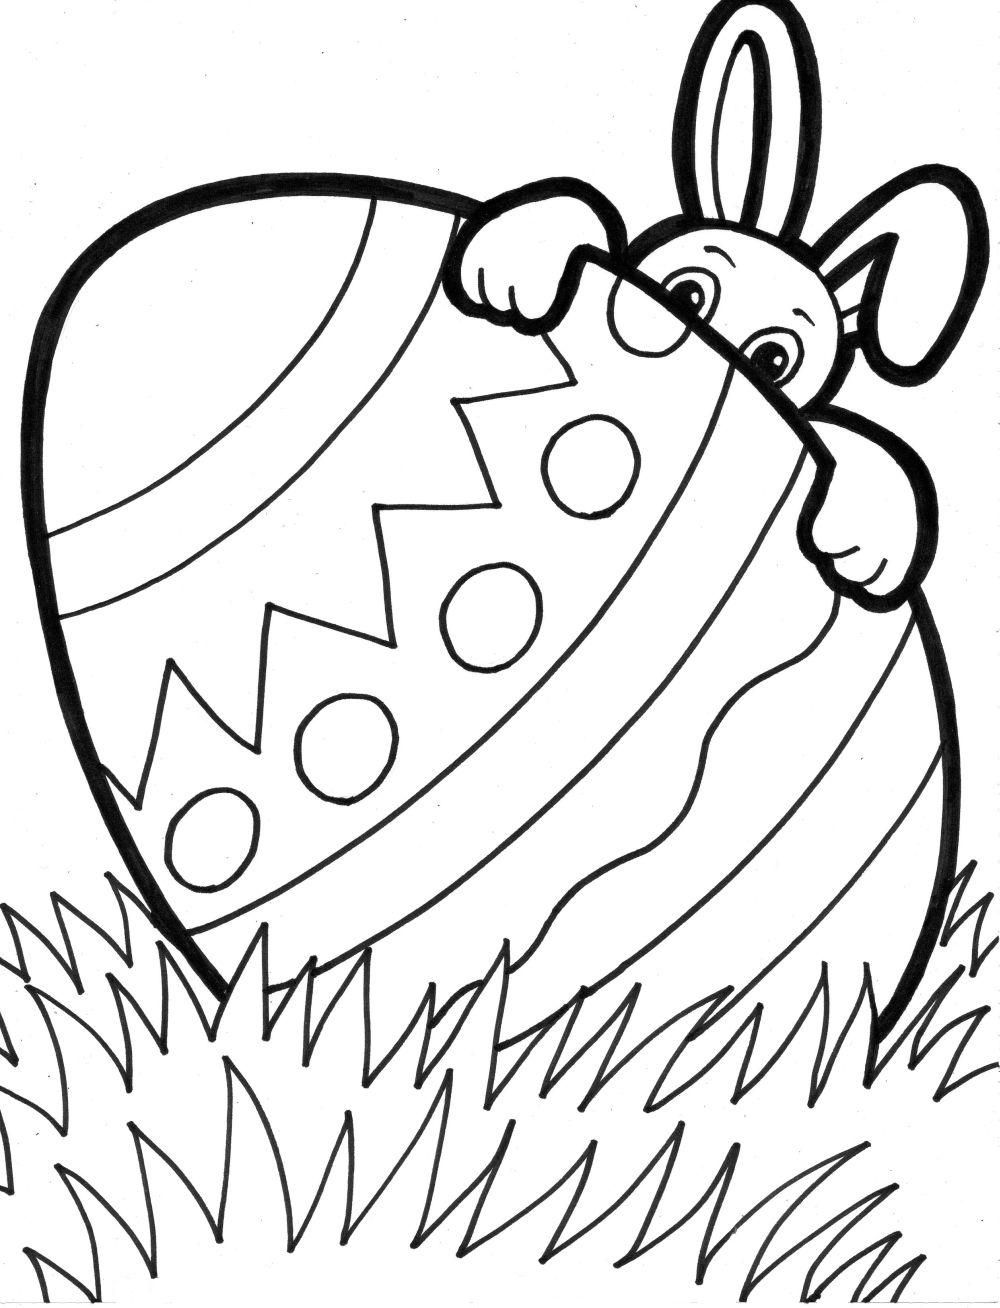 16 Super Cute And Free Easter Printable Coloring Pages For Kids Free Easter Coloring Pages Easter Bunny Colouring Easter Coloring Pages Printable